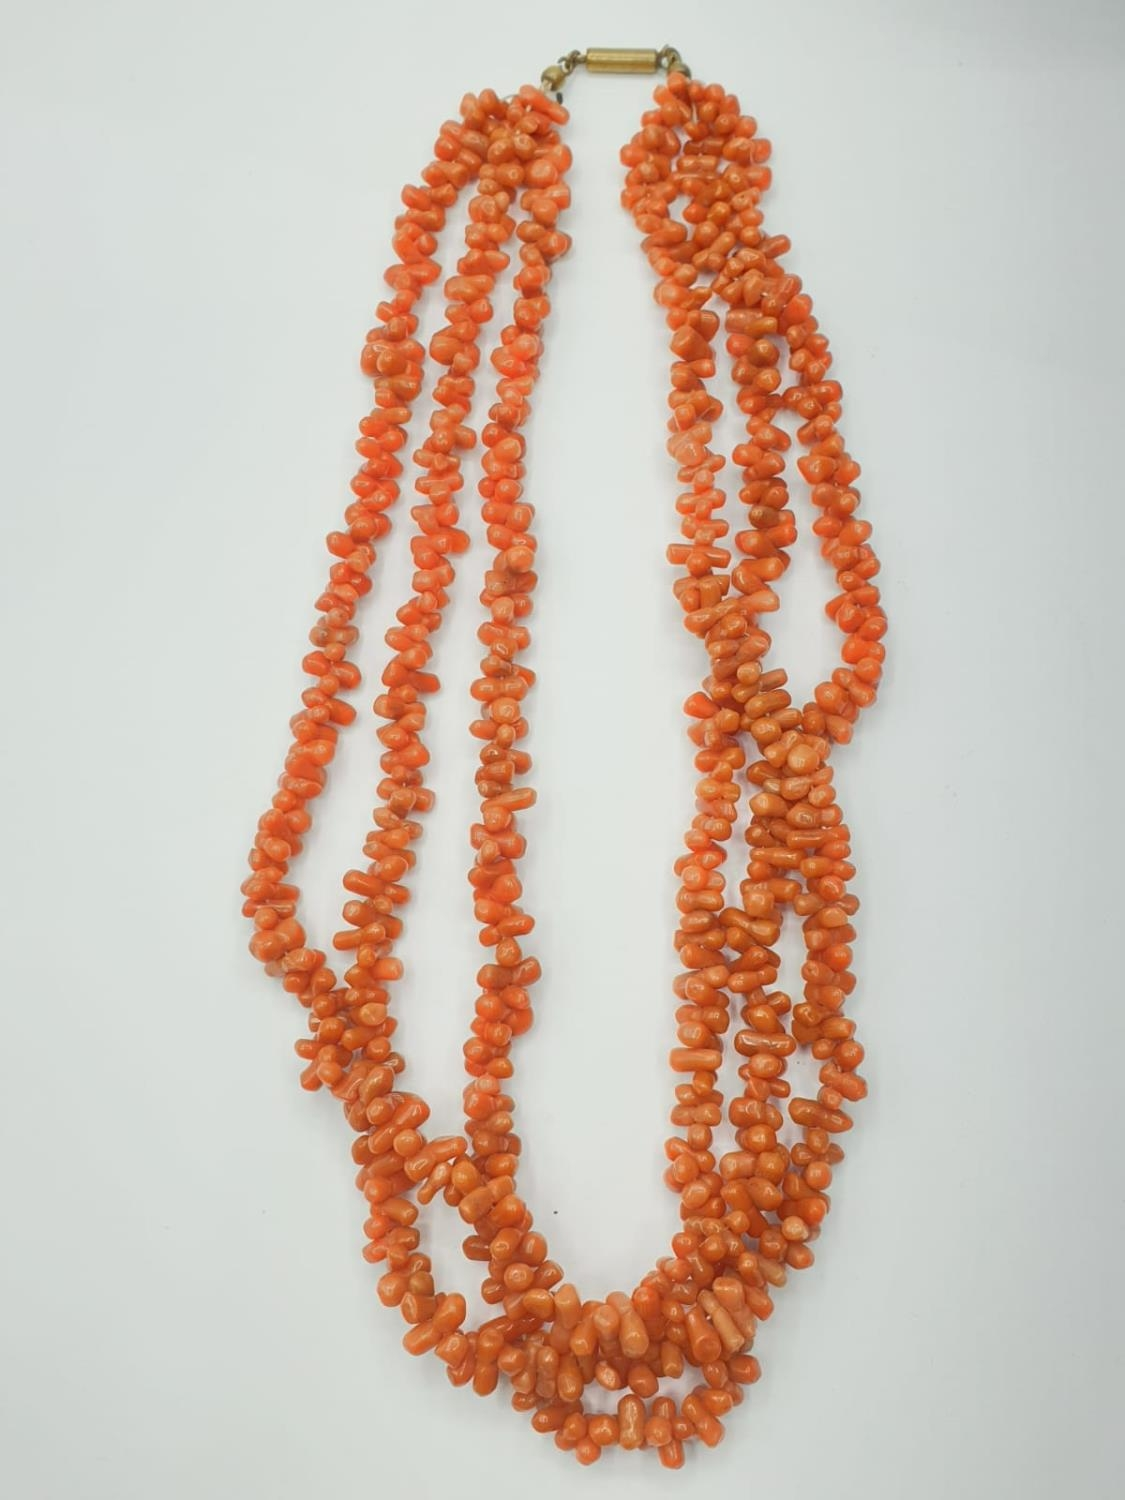 3 ROW CORAL NECKLACE CHOKER STYLE, WEIGHT 71.6G AND 45CM LONG APPROX - Image 2 of 4